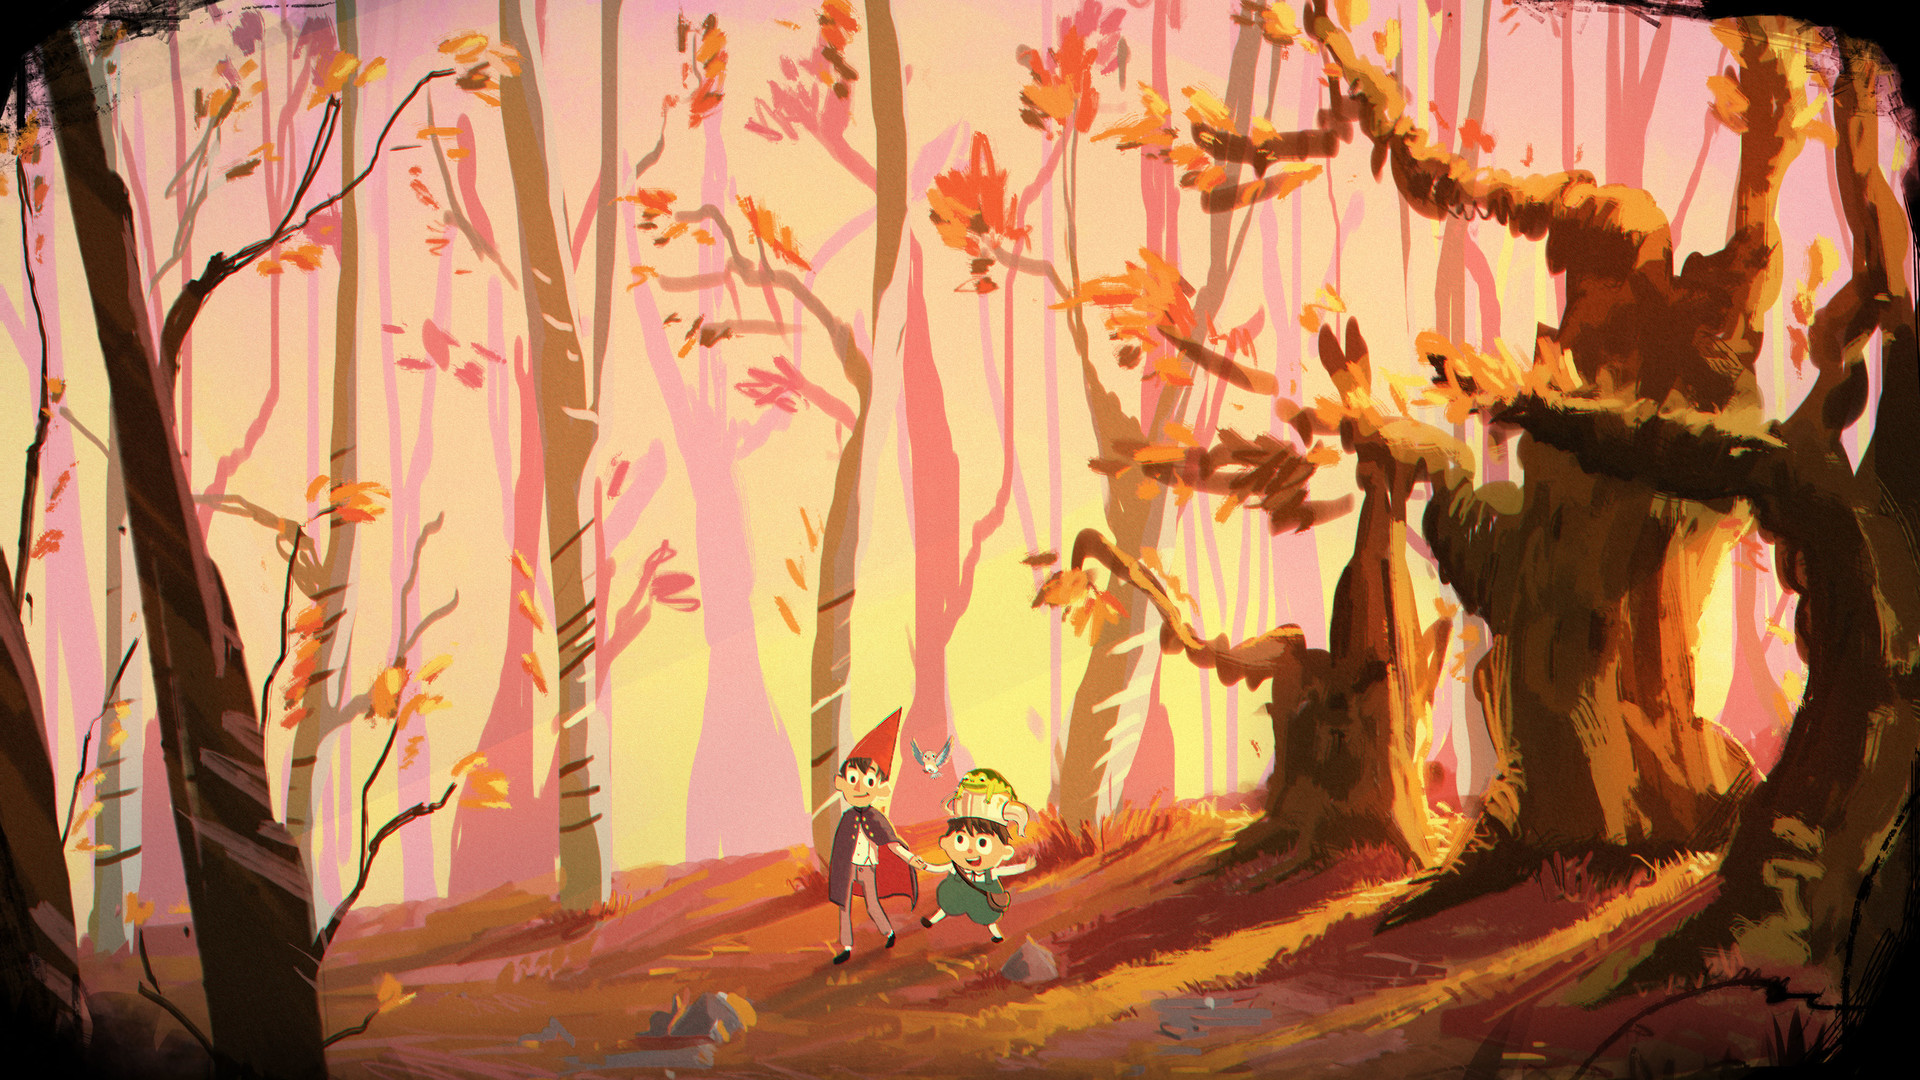 Over The Garden Wall Wallpaper Hd Posted By Zoey Peltier